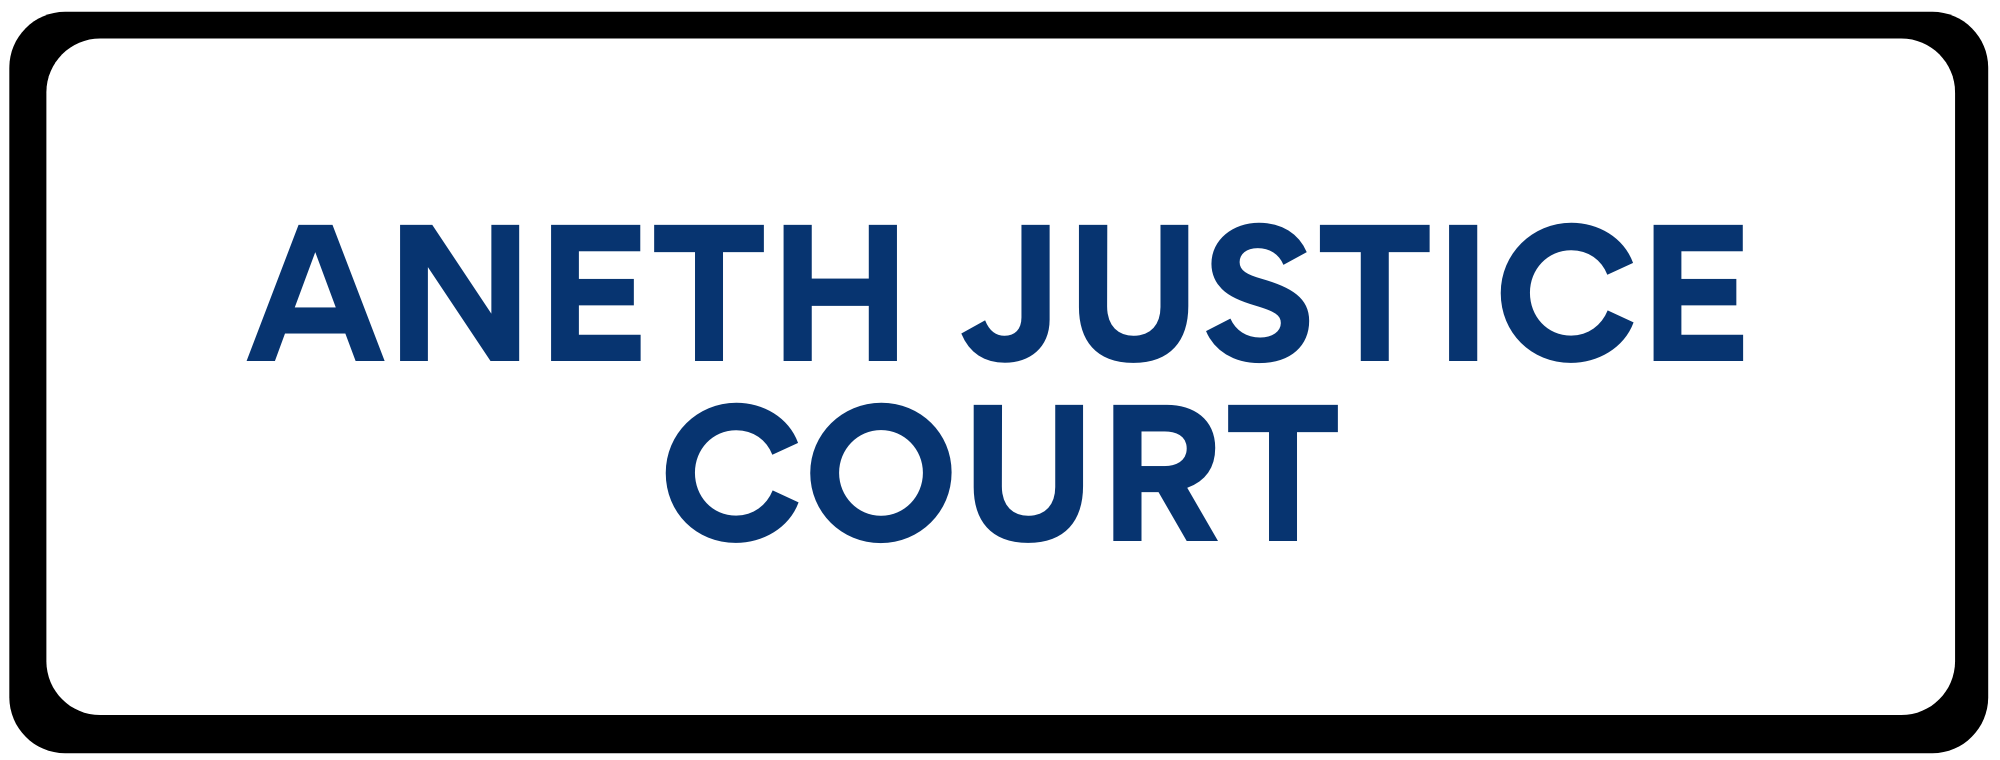 Aneth Justice Court